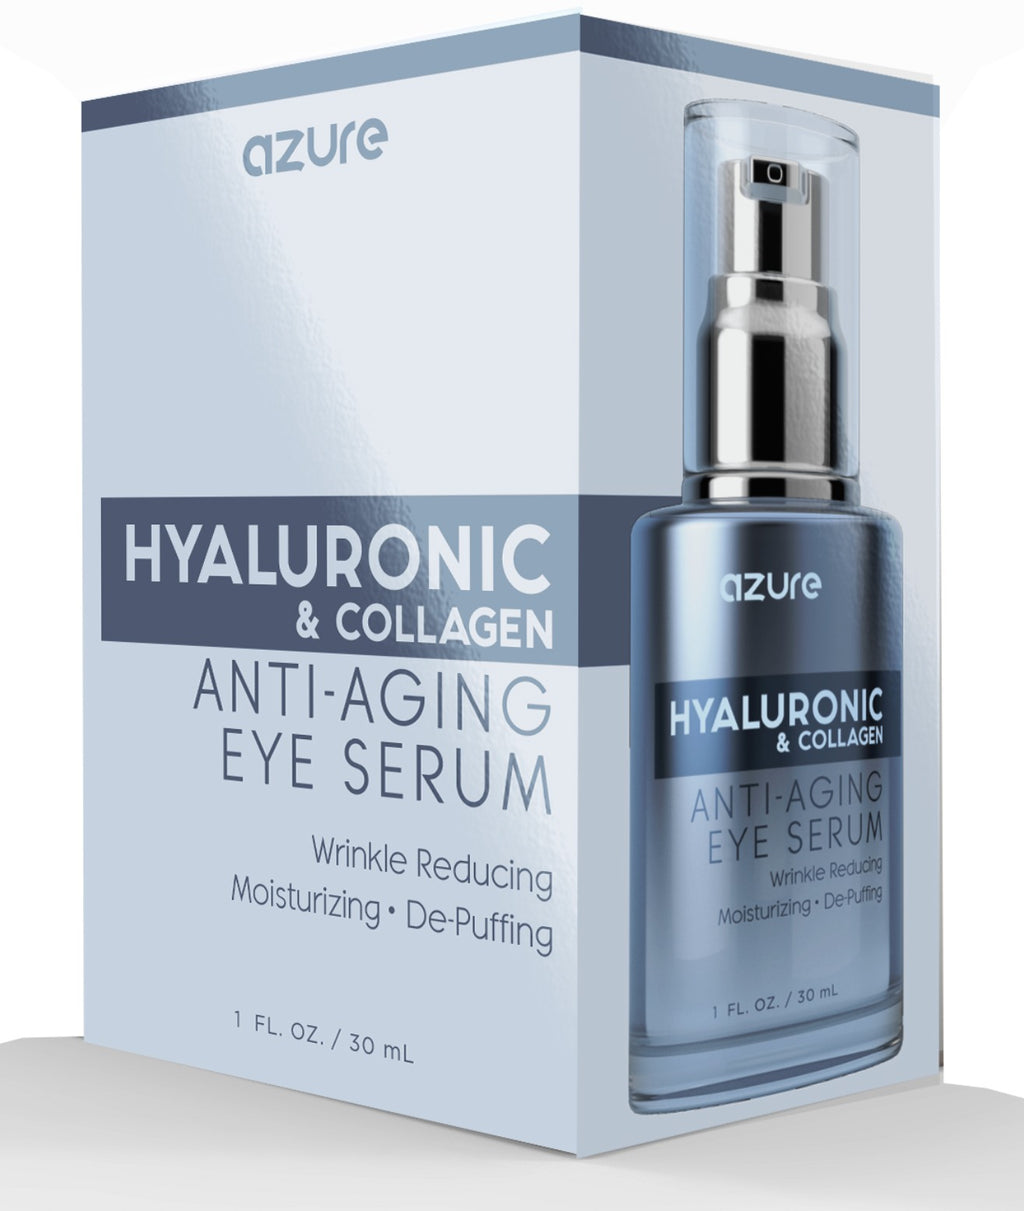 Hyaluronic and Collagen Eye Serum